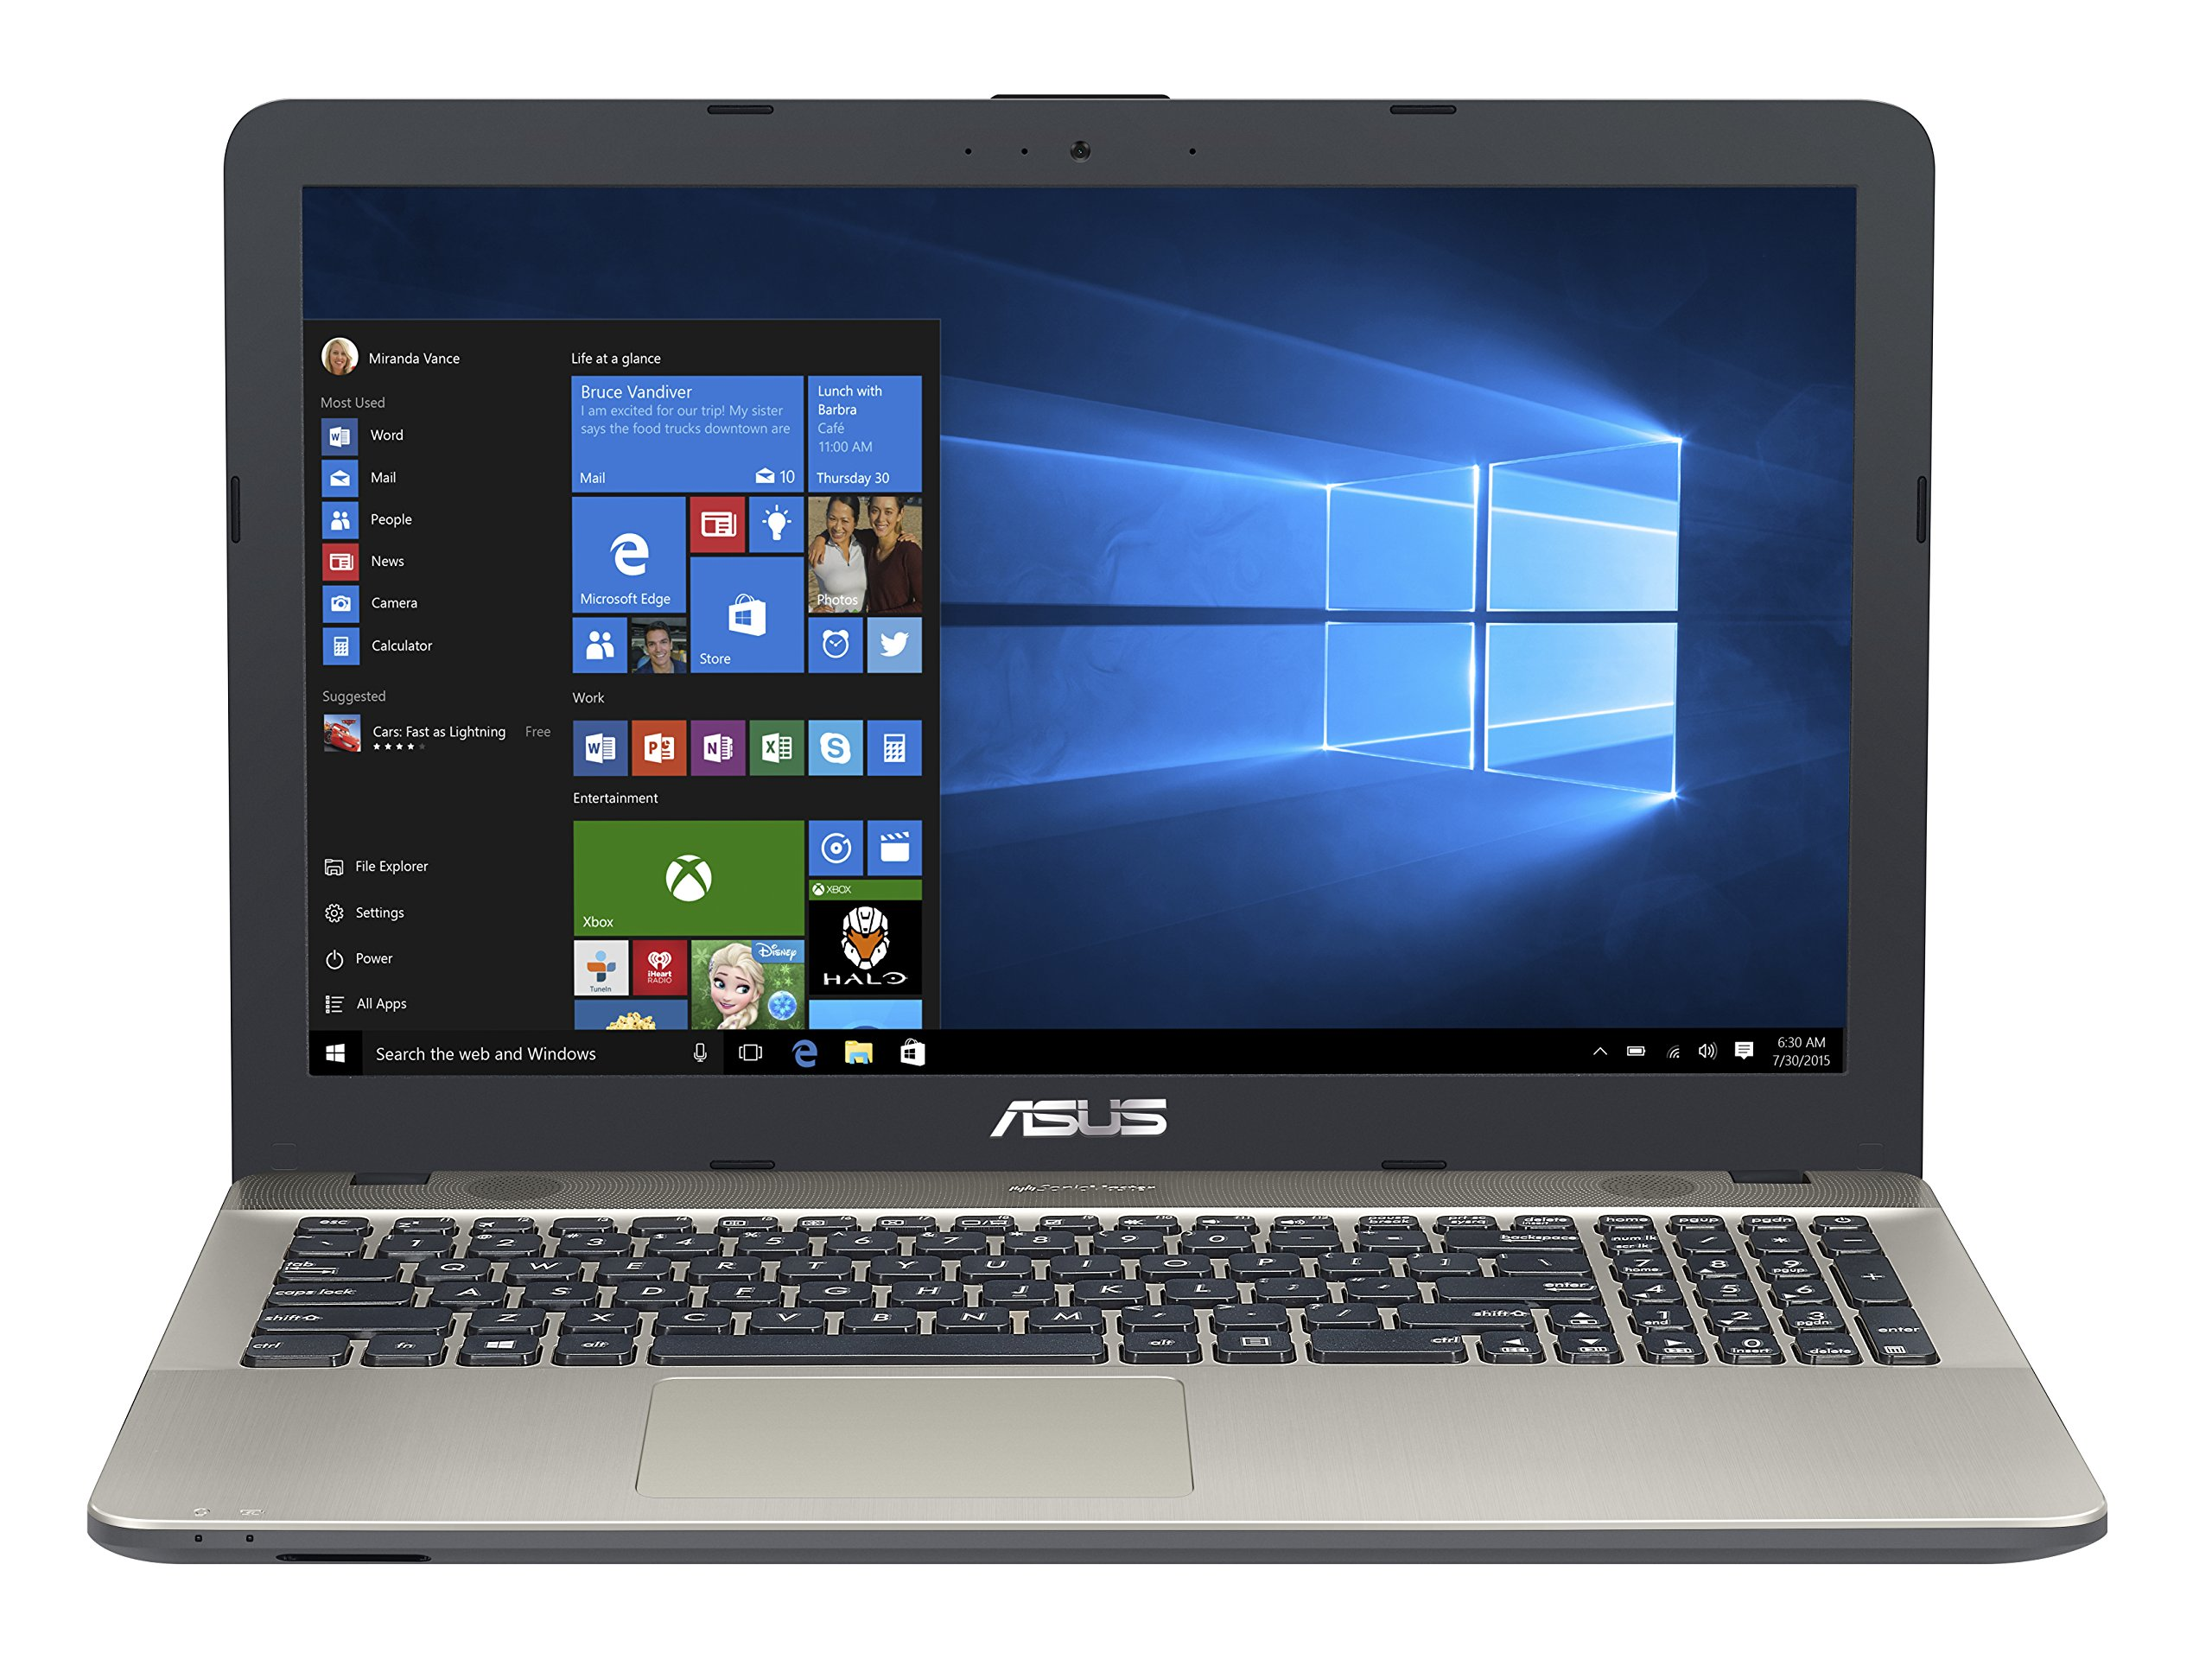 2018 Asus VivoBook Max 15.6 inch HD High Performance Laptop PC | Intel Pentium N4200 Quad-Core | 4GB RAM | 500GB HDD | Bang & Olufsen Audio | USB Type-C | DVD +/-RW | Windows 10 1